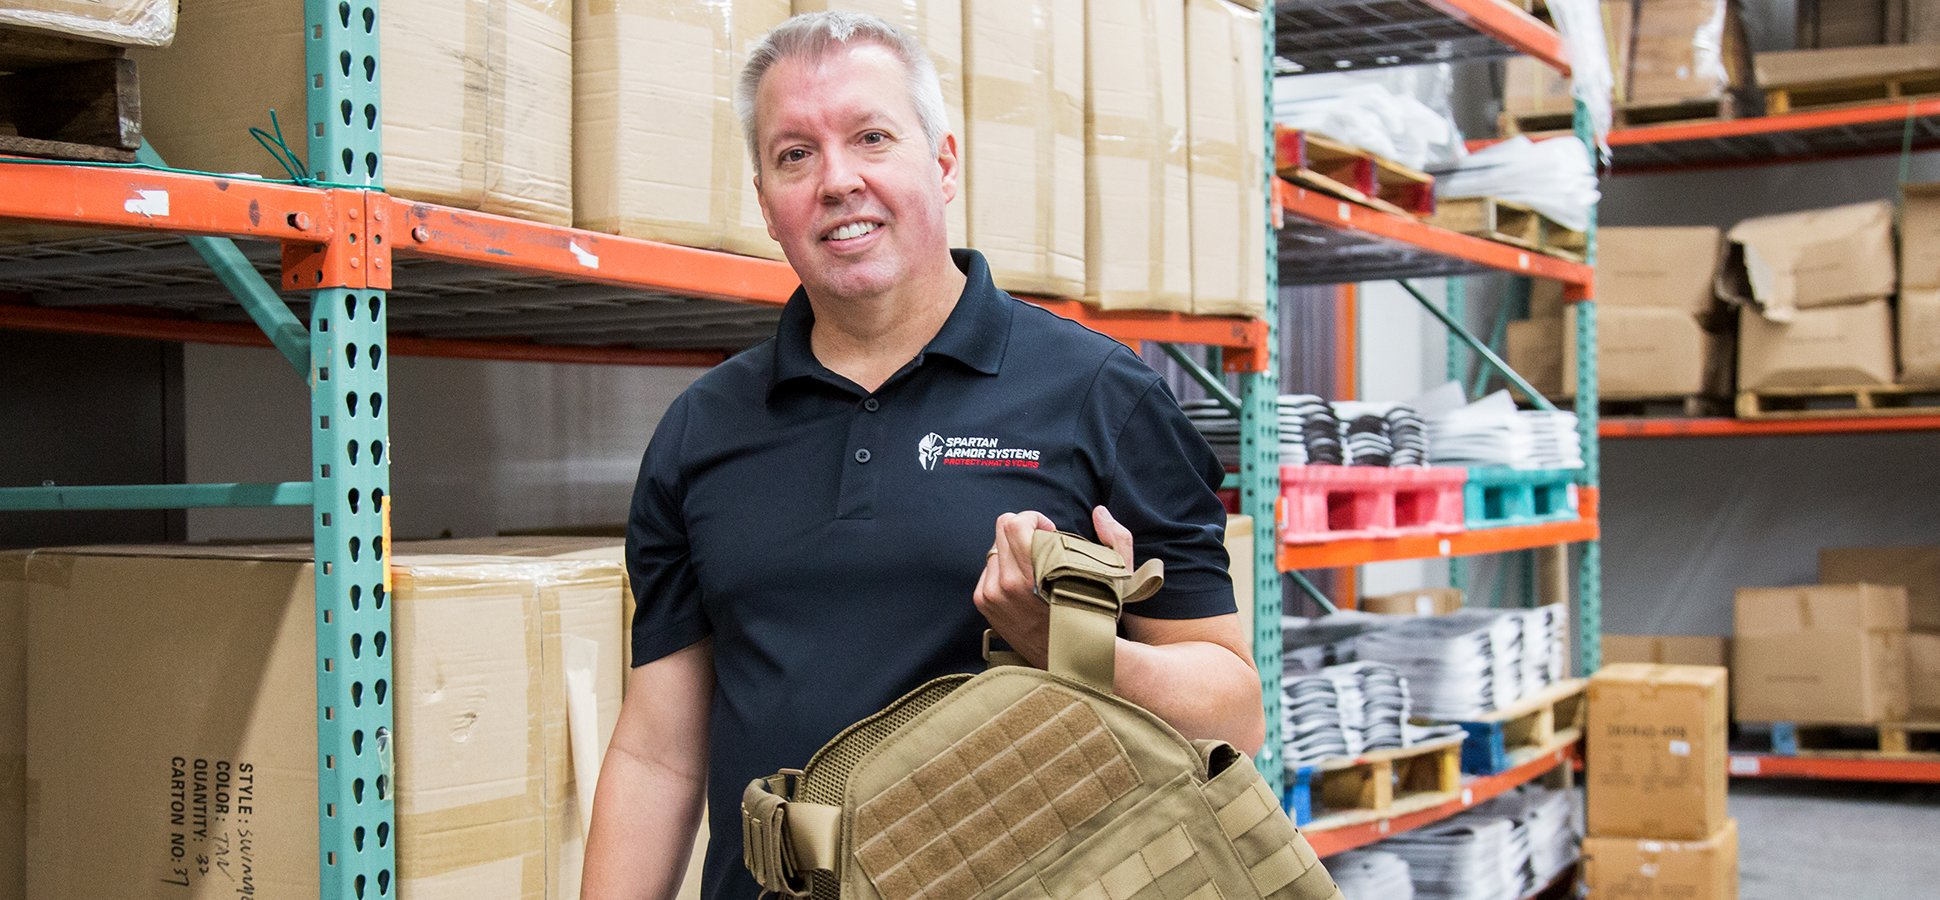 How This Body Armor Business Grew From One Man in a Garage to $5.4 Million